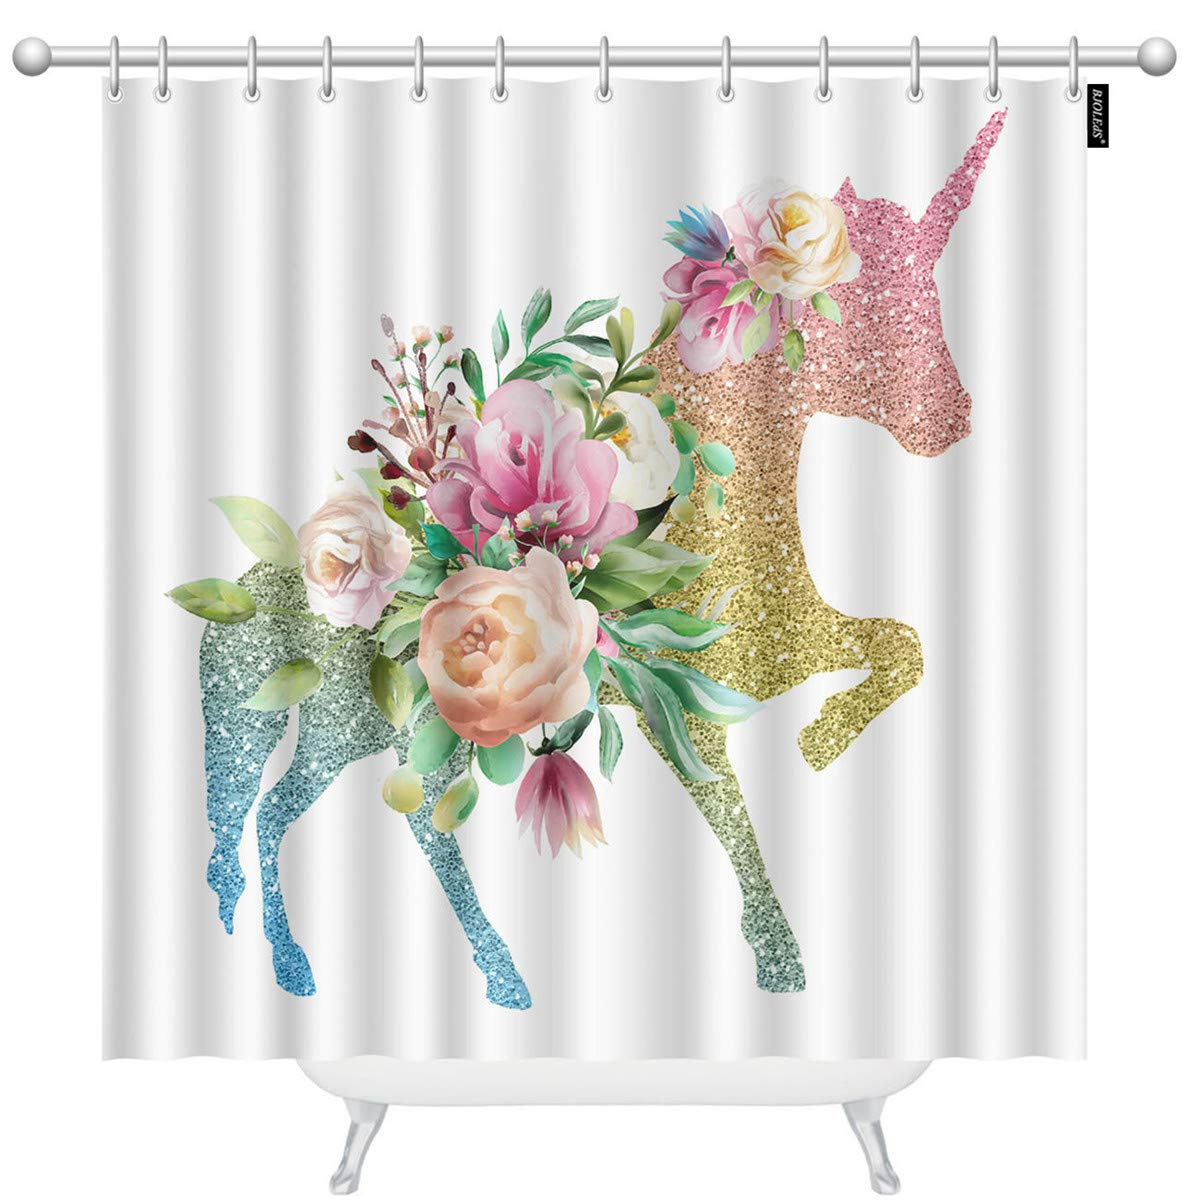 BJOLEdS Colofrul Unicorn Shower Curtains Beautiful Unicorn Rainbow Color with Shiny Golden Glitter Watercolor Flowers Decorative Bathroom Waterproof Fabric Shower Curtain with 12 Hooks 60 x 72 Inches